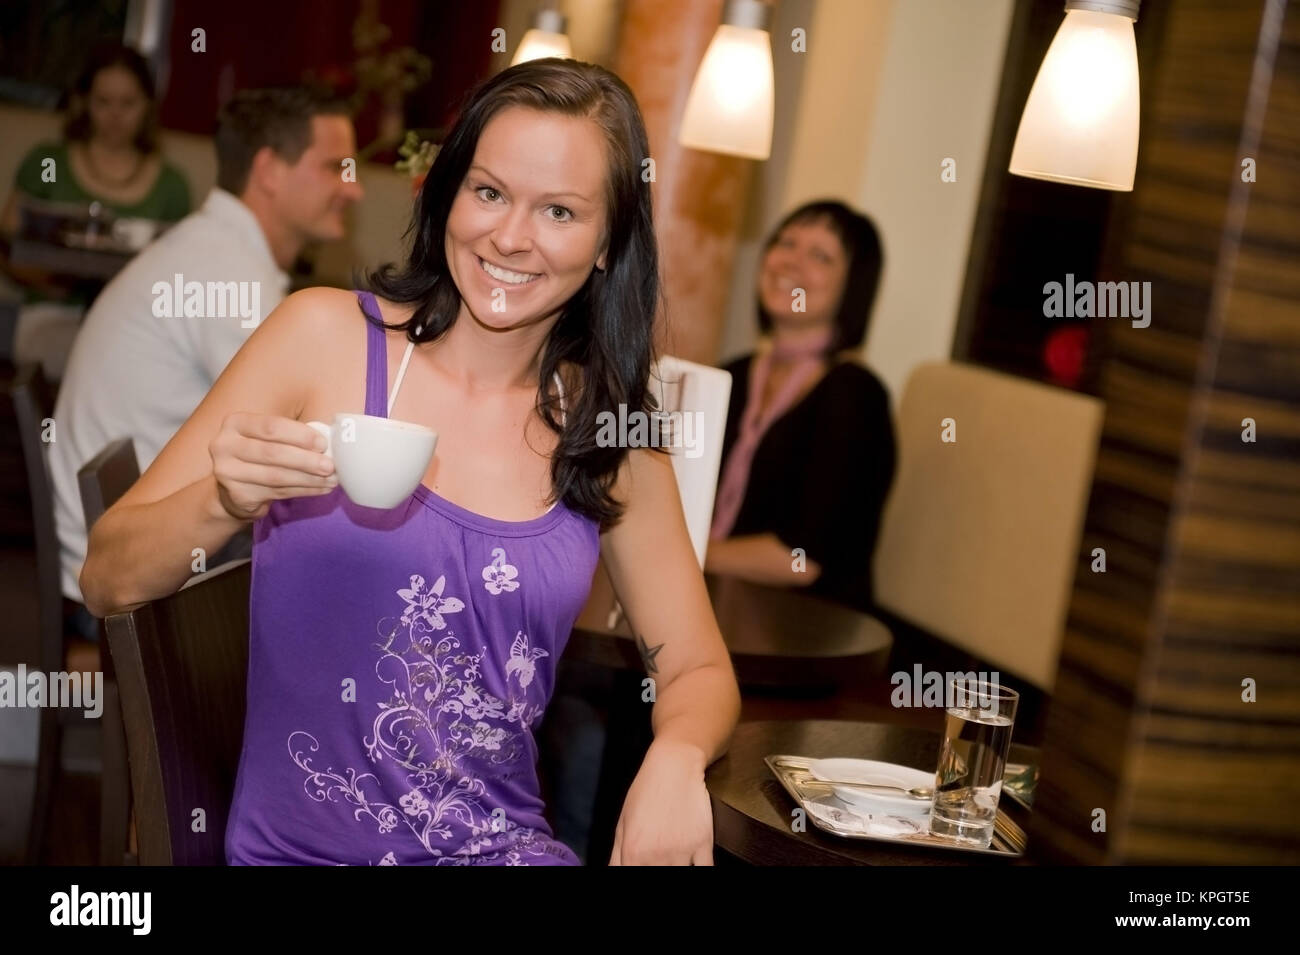 Model released , Kaffeehausbesuch, Junge Frau mit Kaffeetasse - woman drinks coffee in coffeehouse - Stock Image